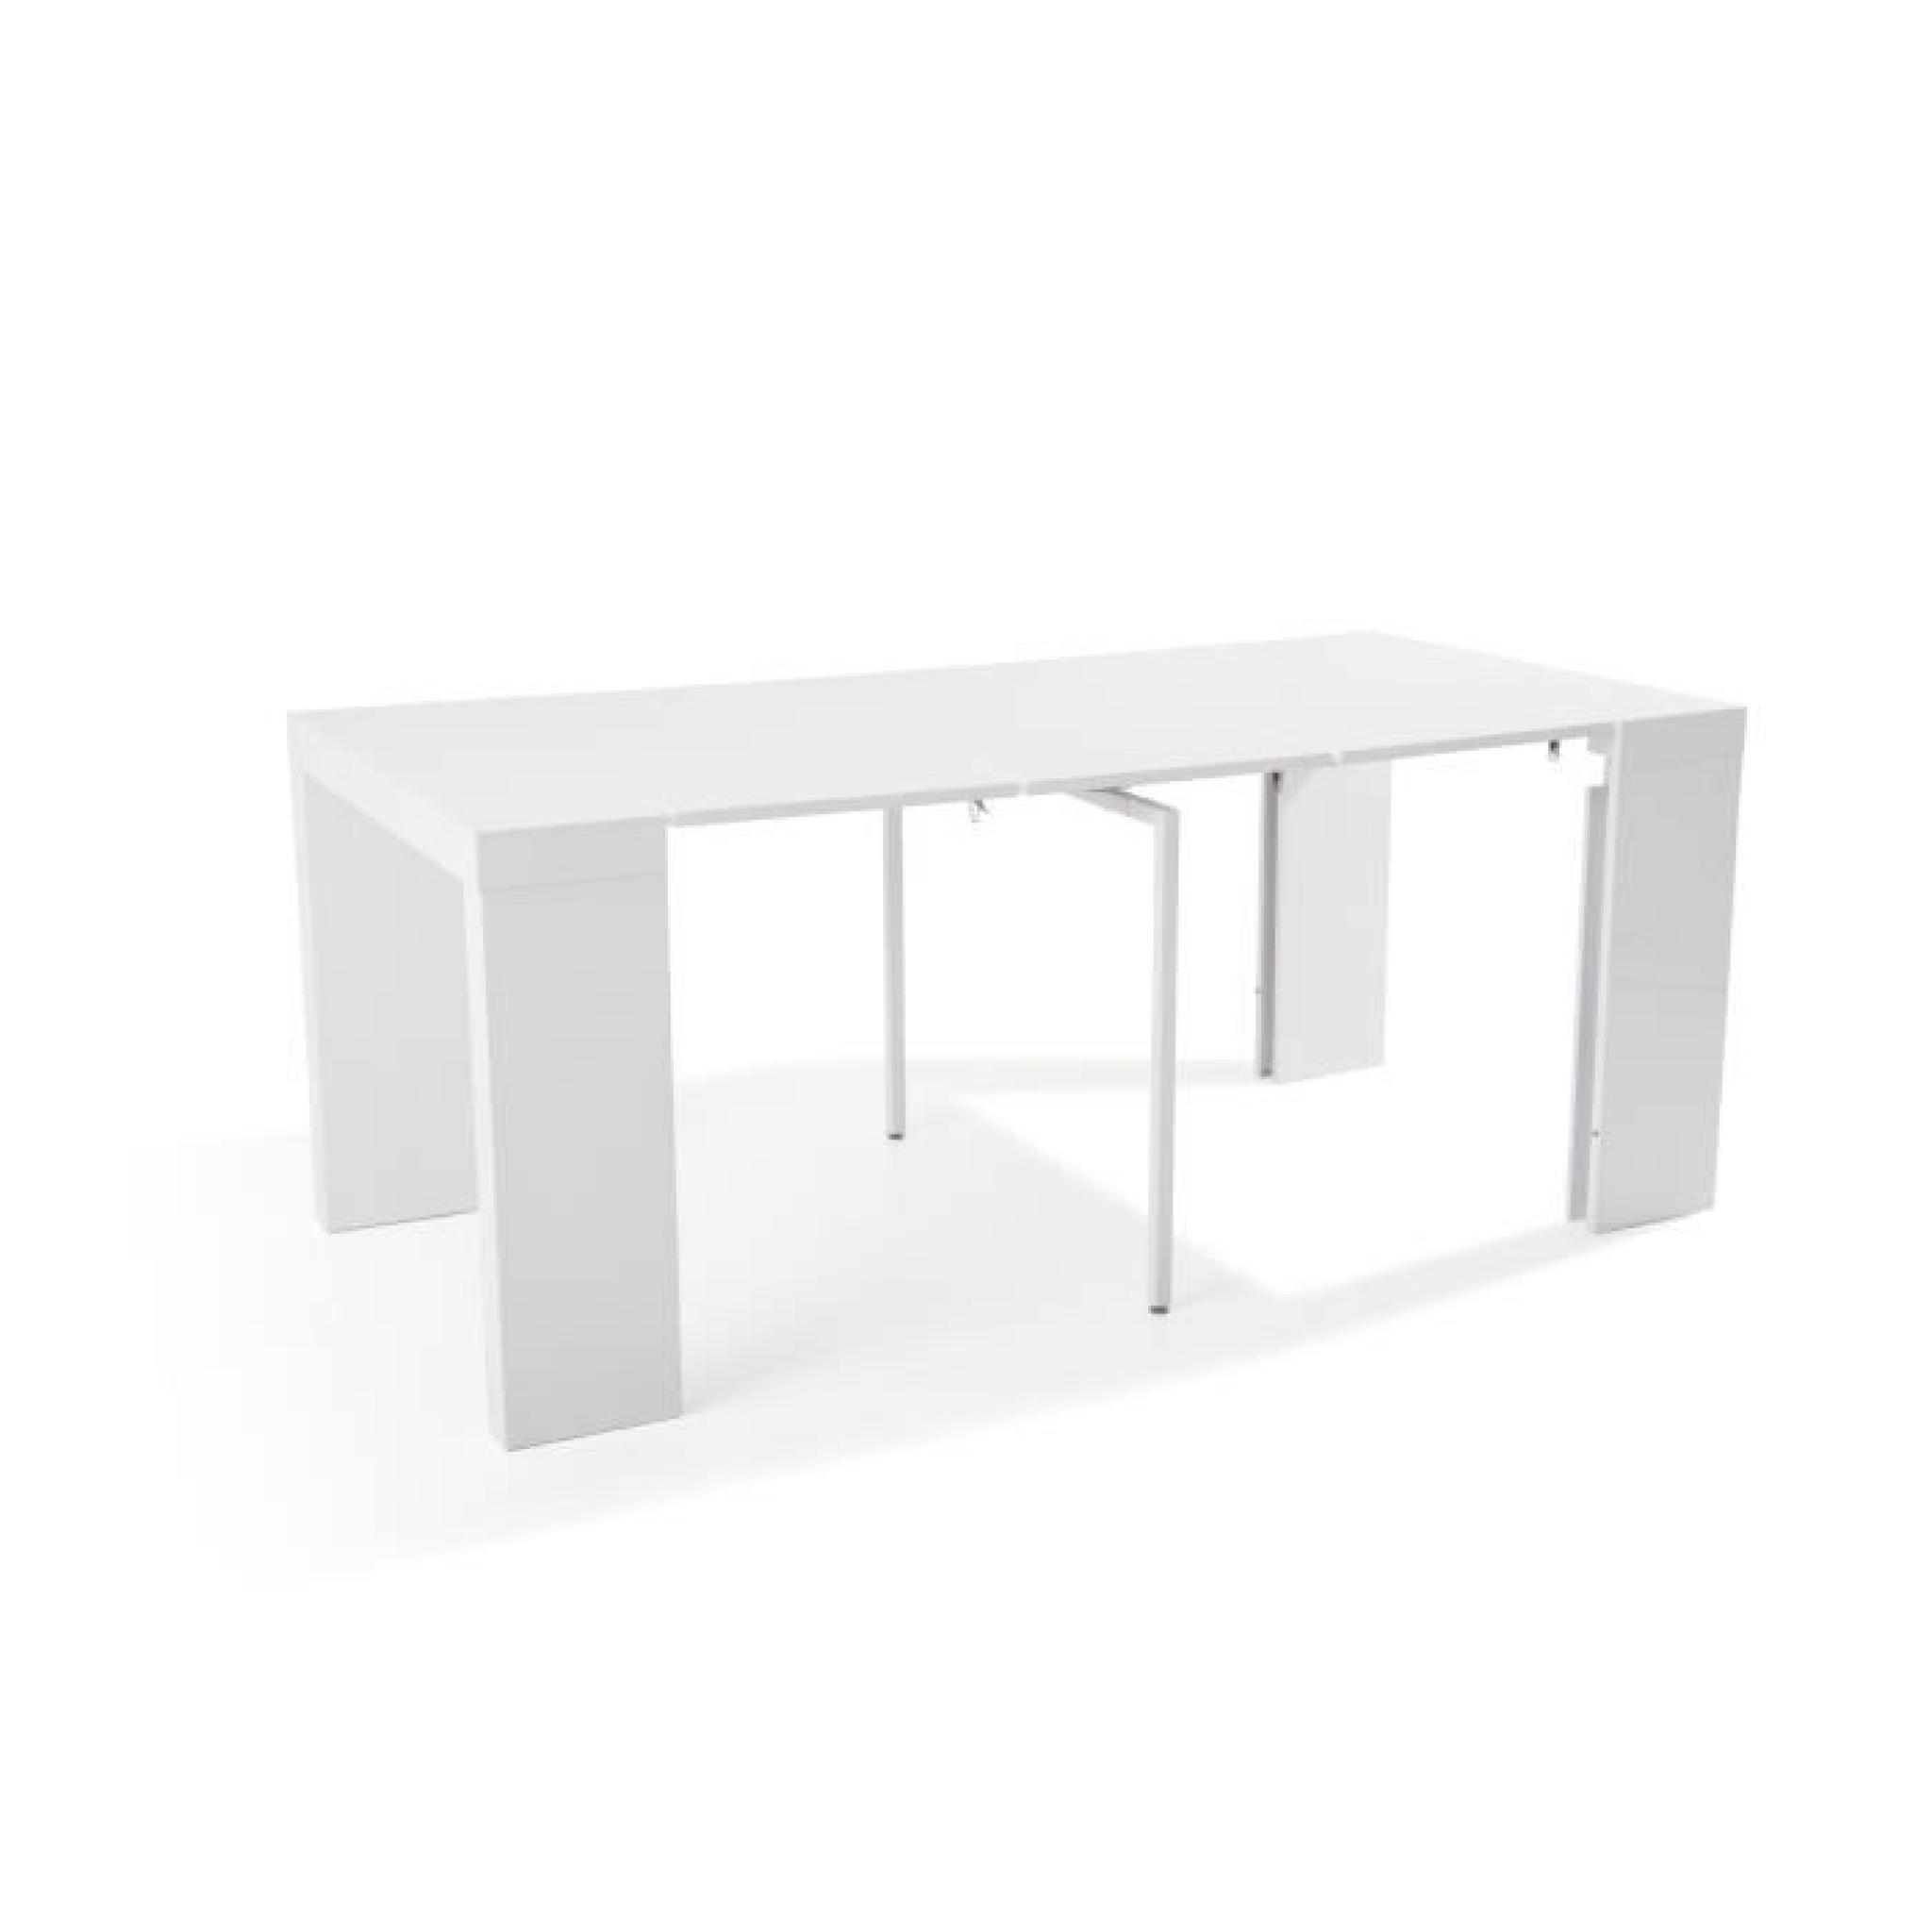 Table Console Extensible Othello 5 allonges Laqué Gris -2m70-